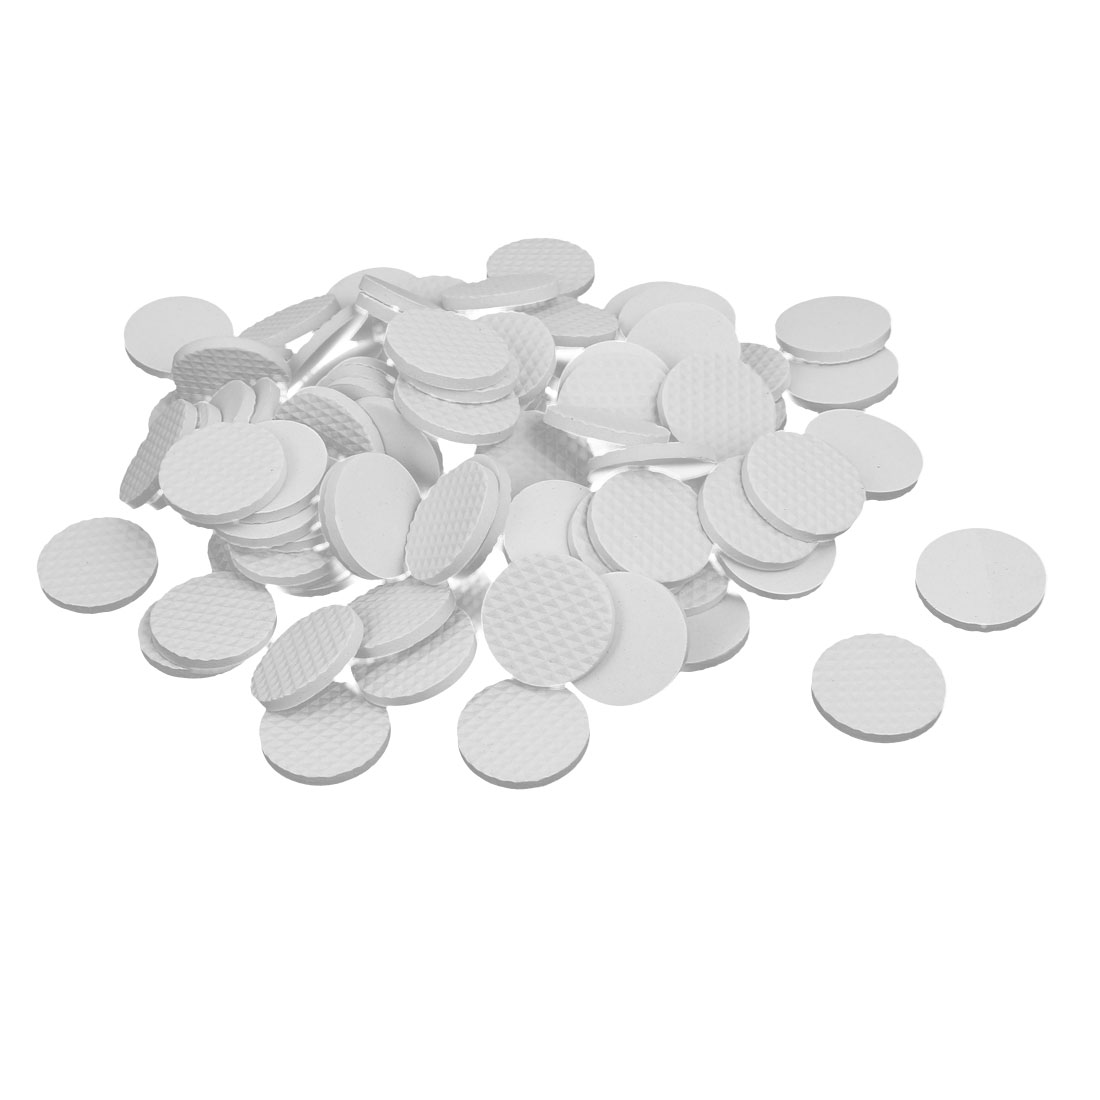 30mm Dia Rubber Self Adhesive Anti-Skid Furniture Protection Pads White 90pcs